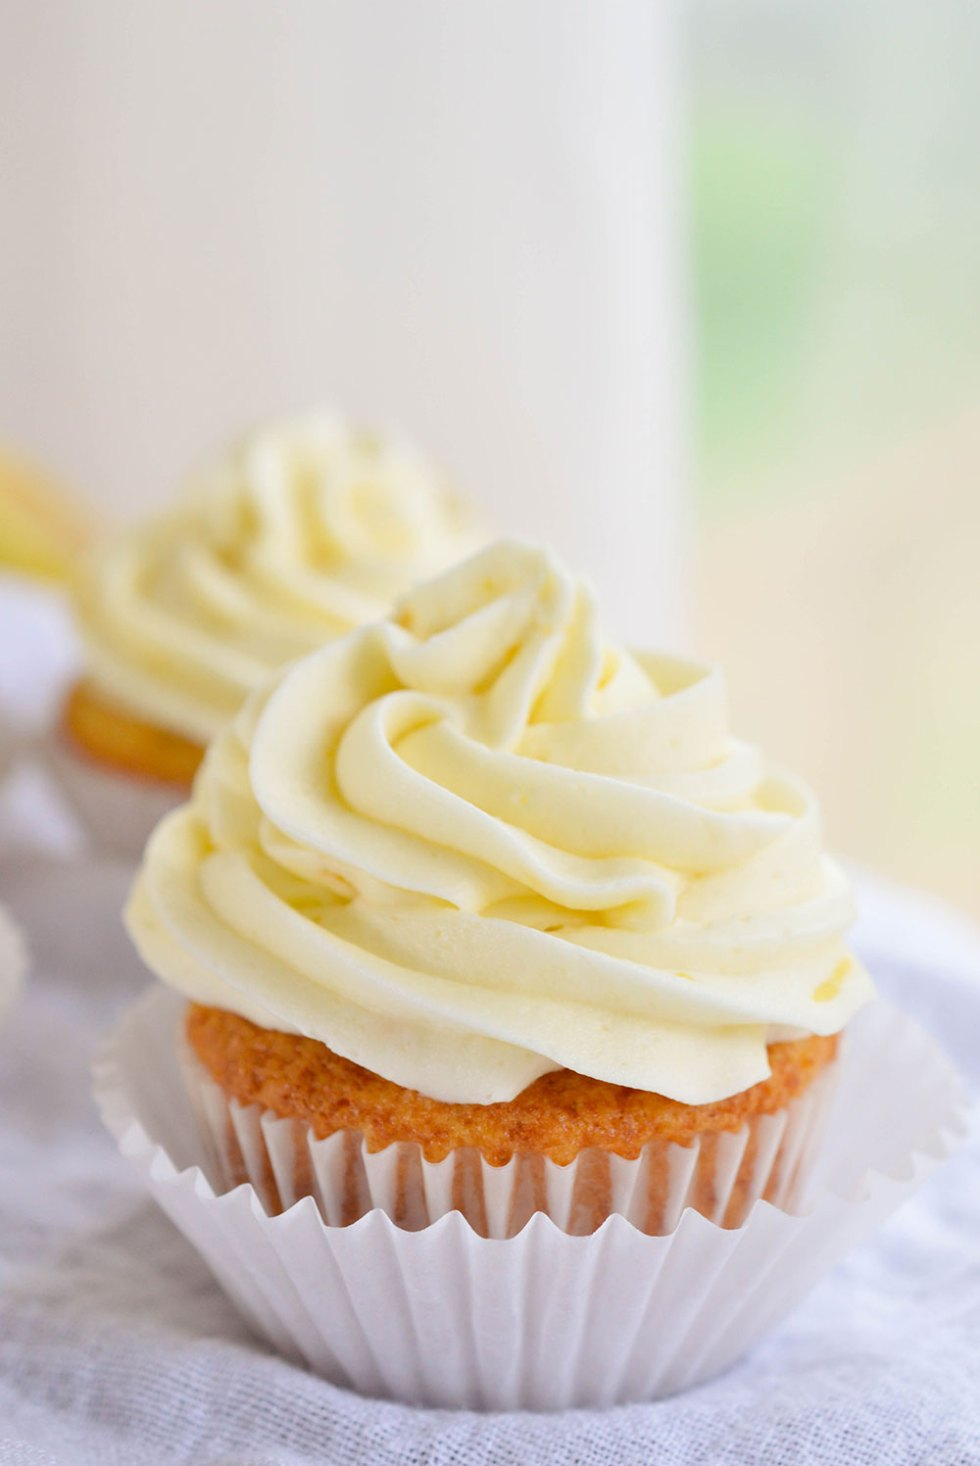 Easy Lemon Cupcakes made with Lemon Crème pie filling. A quick and easy lemon dessert!